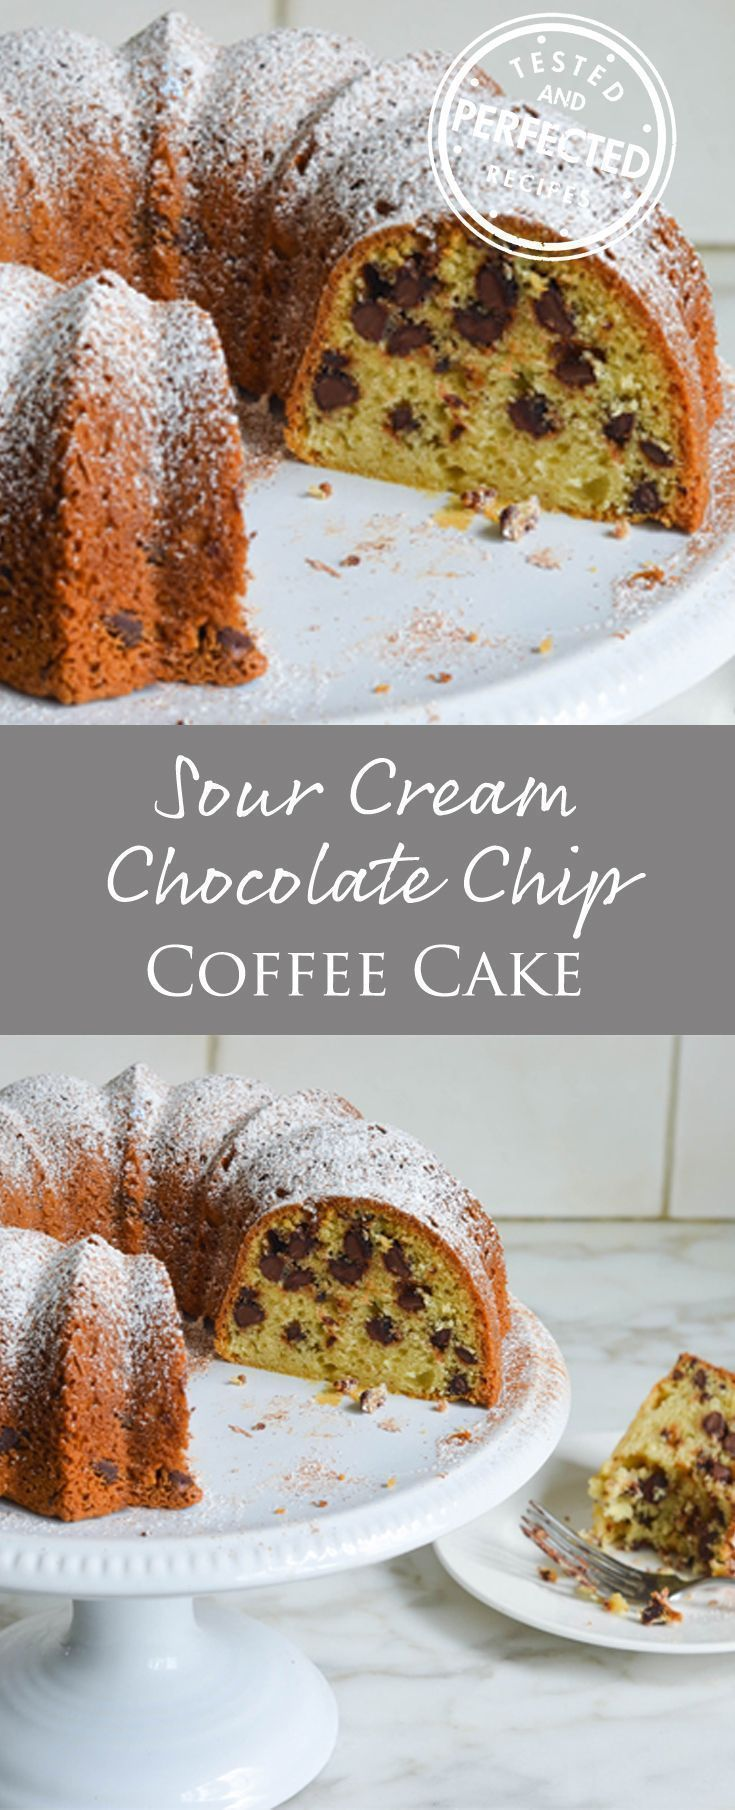 Rich and tender from the addition of sour cream, and jam-packed with chocolate chips, this is the kind of old-fashioned, homey cake that appeals to just about everyone — and it's super-simple. Sour Cream Chocolate Chip Coffee Cake! #cake #testedandperfected #chocolatechip